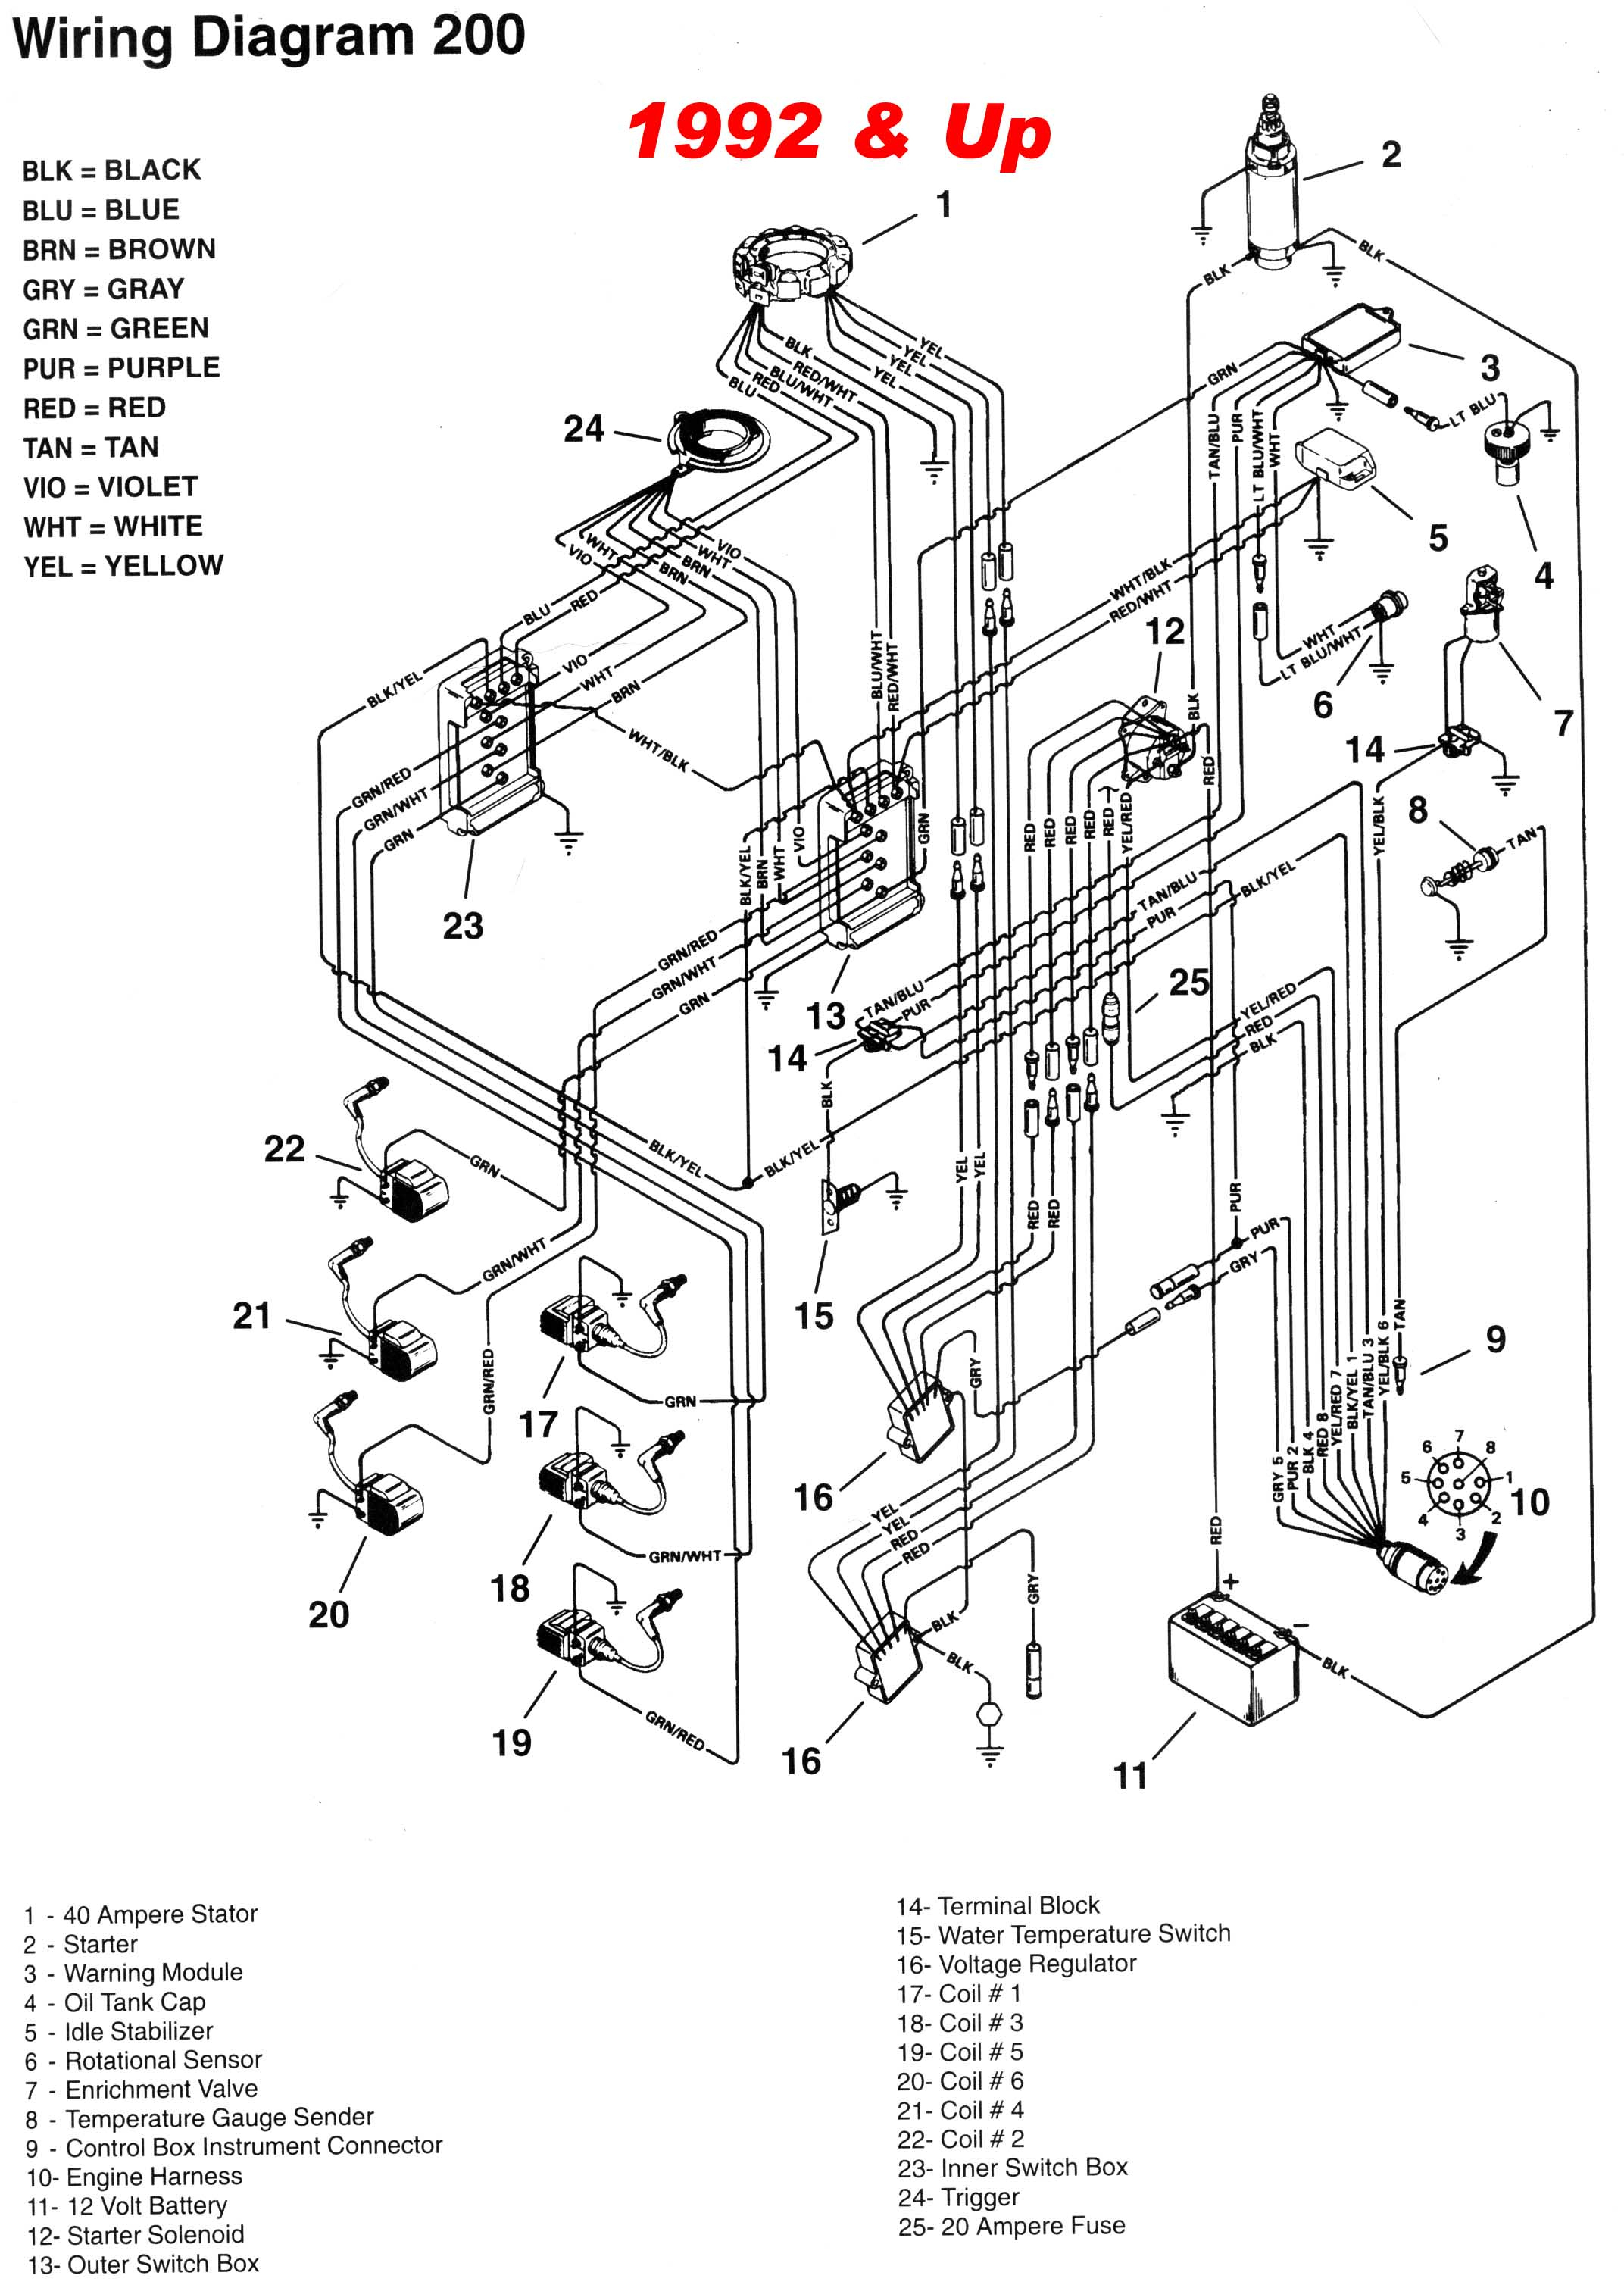 Previa 2003    Wiring       Diagrams      Wirings    Diagram